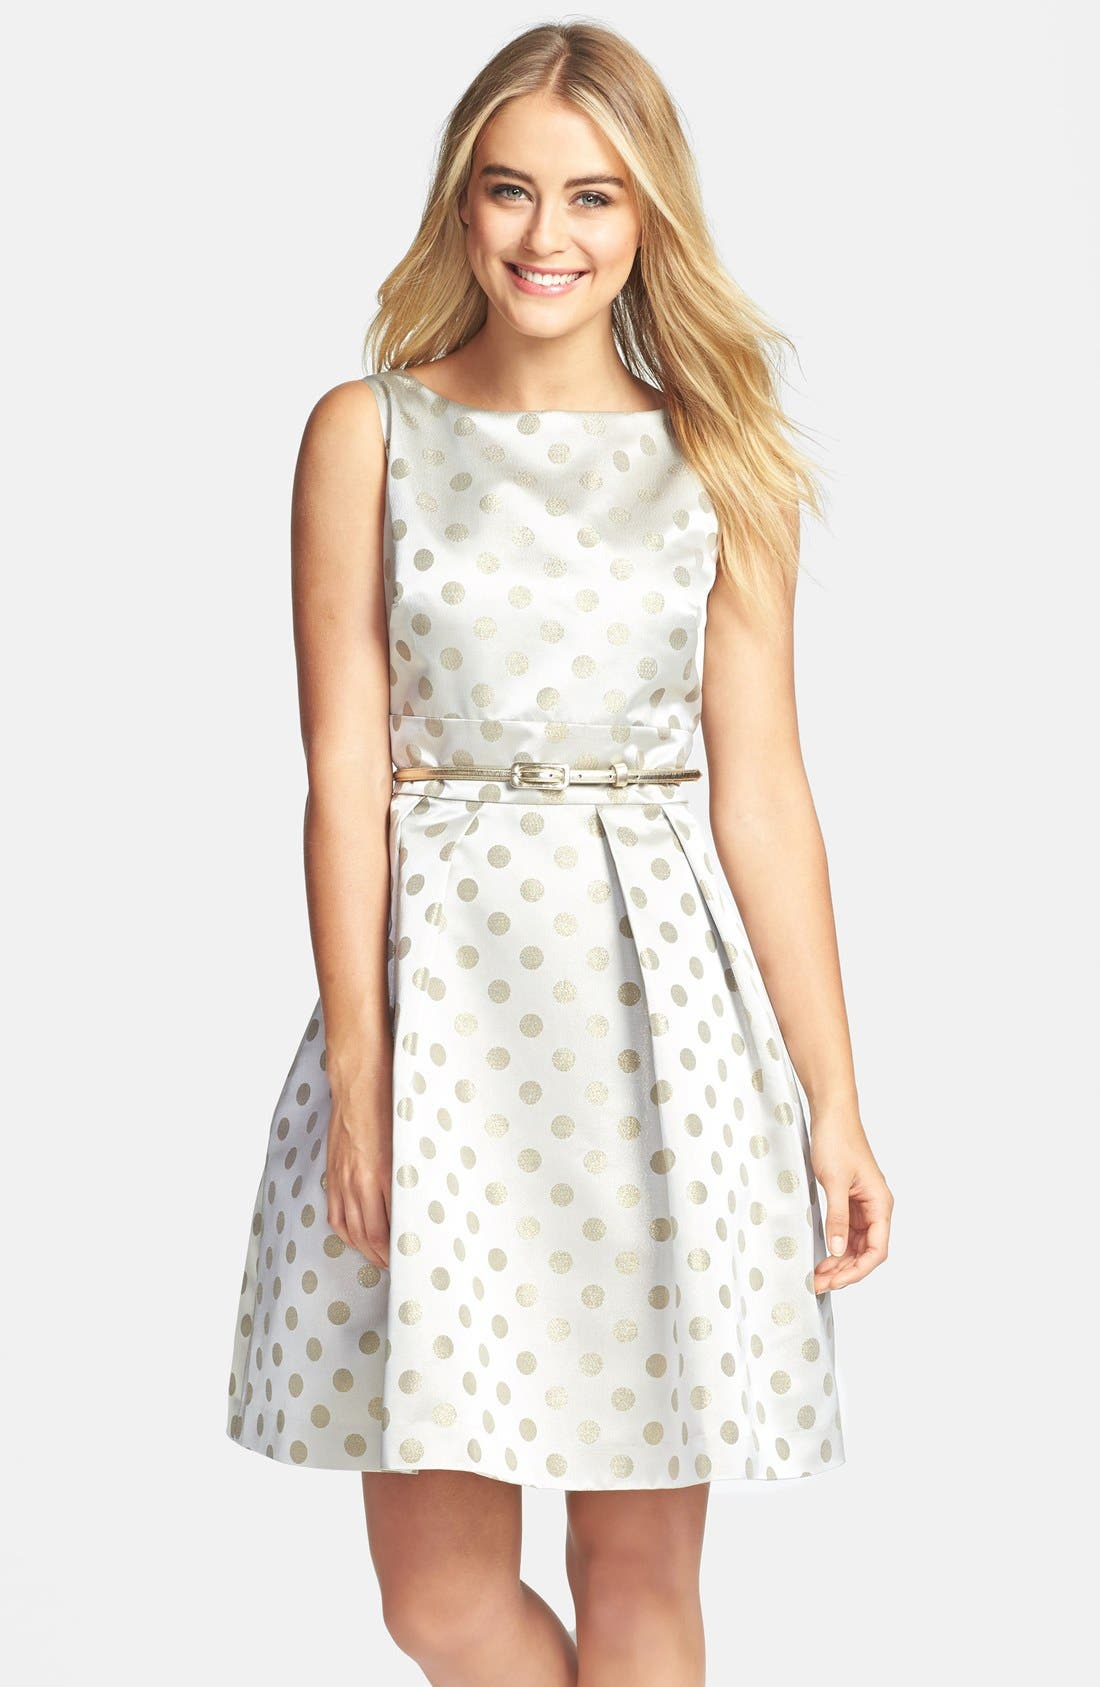 Alternate Image 1 Selected - Eliza J Polka Dot Jacquard Fit & Flare Dress